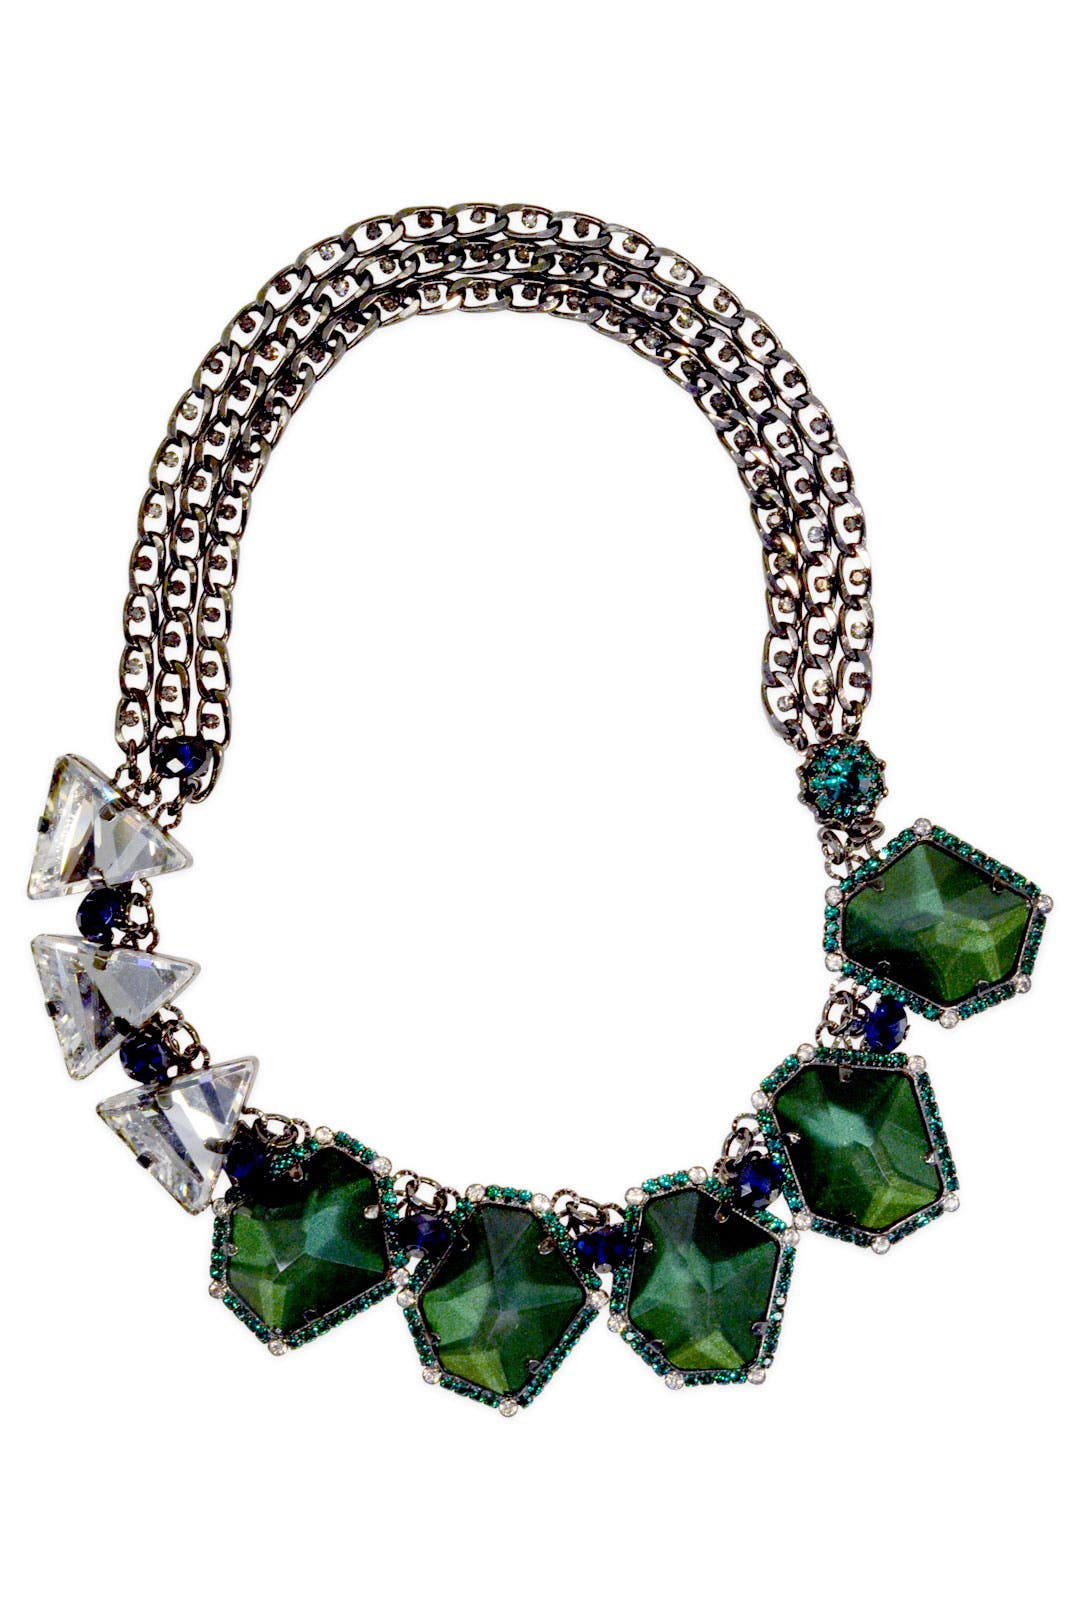 Bejeweled Envy Necklace by Erickson Beamon